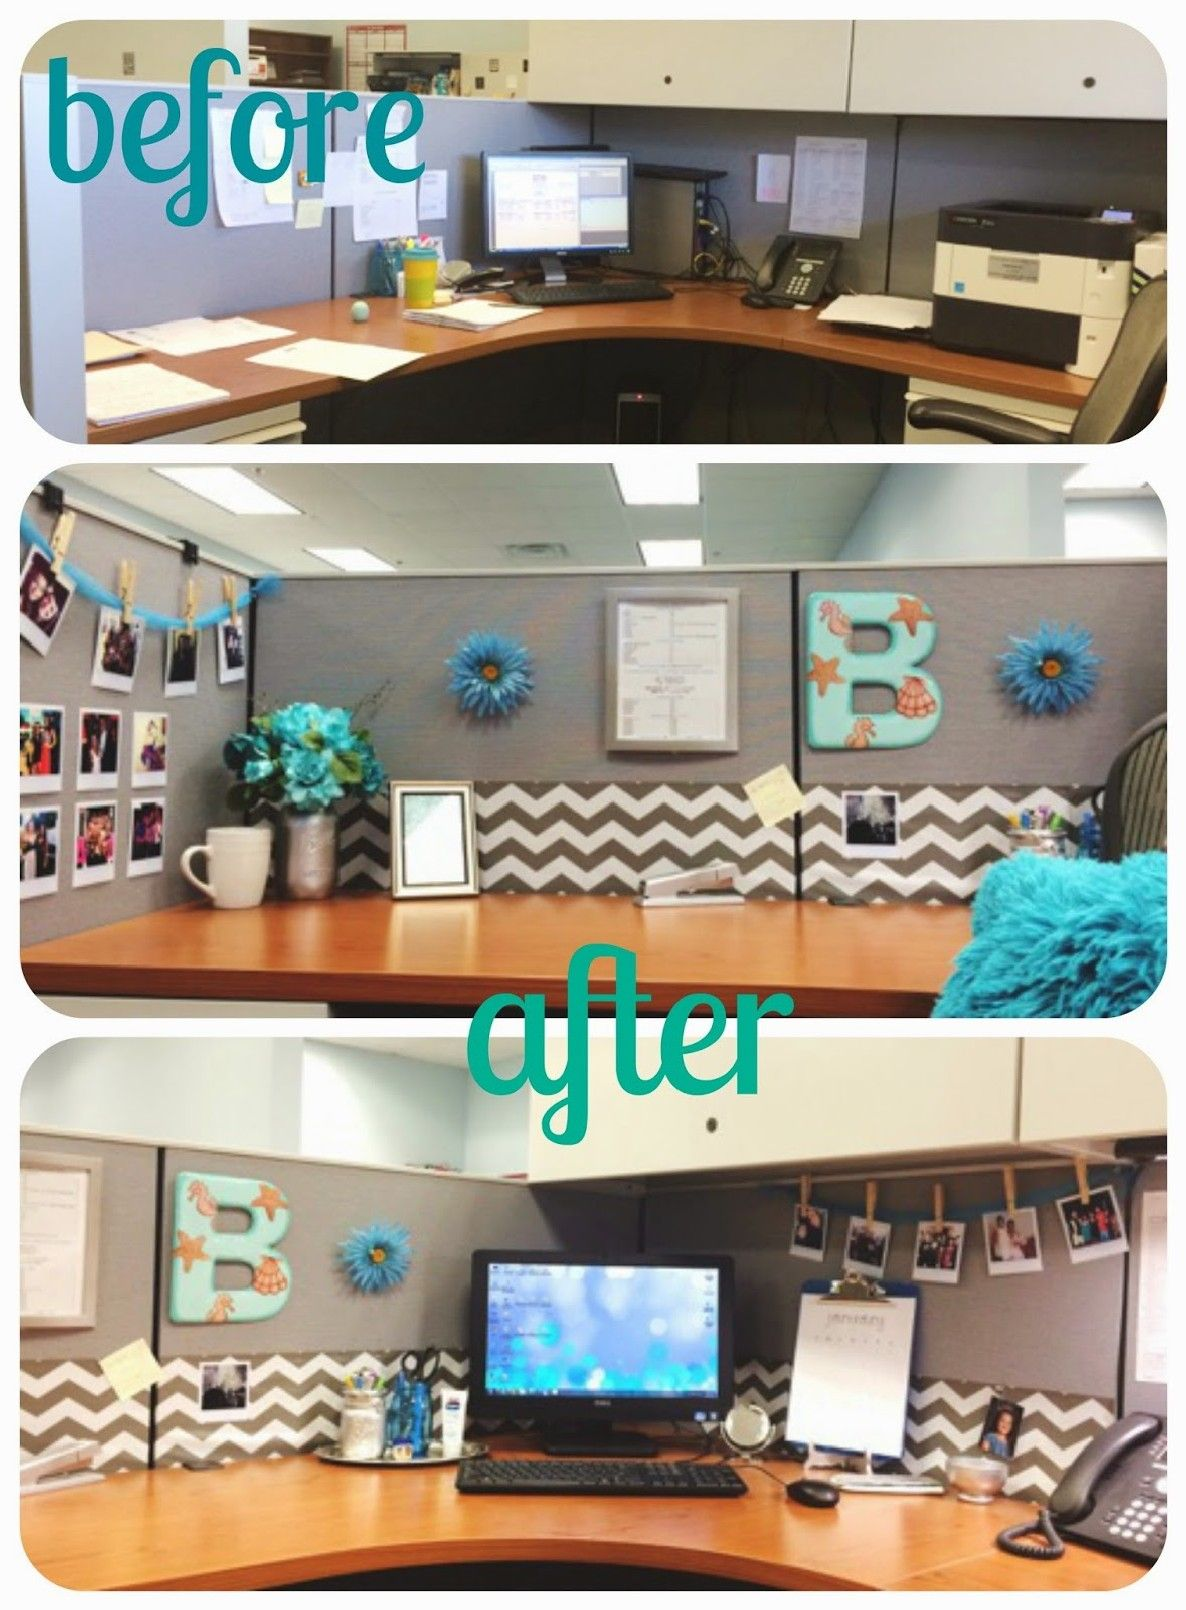 Ditch Your Boring Workspace With These 35 Cubicle Decor Ideas Awesome Indoor Outdoor Cubicle Decor Office Work Desk Decor Work Space Decor